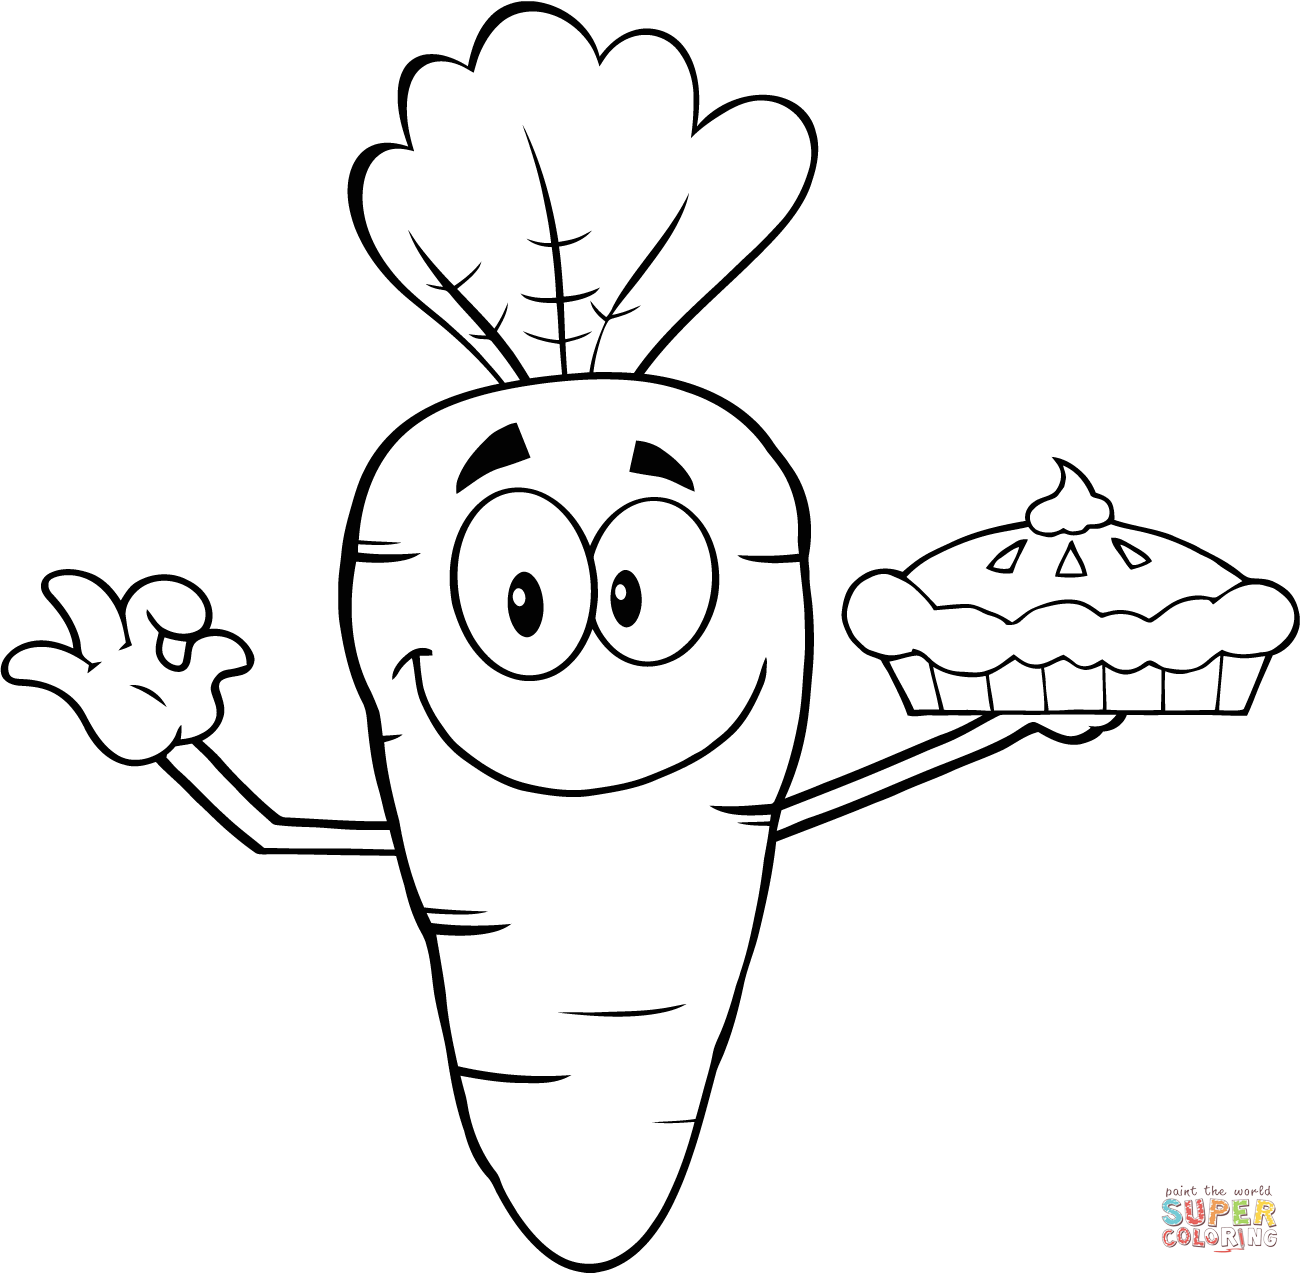 Carrot clipart gajar Pages Smiling Free coloring Coloring